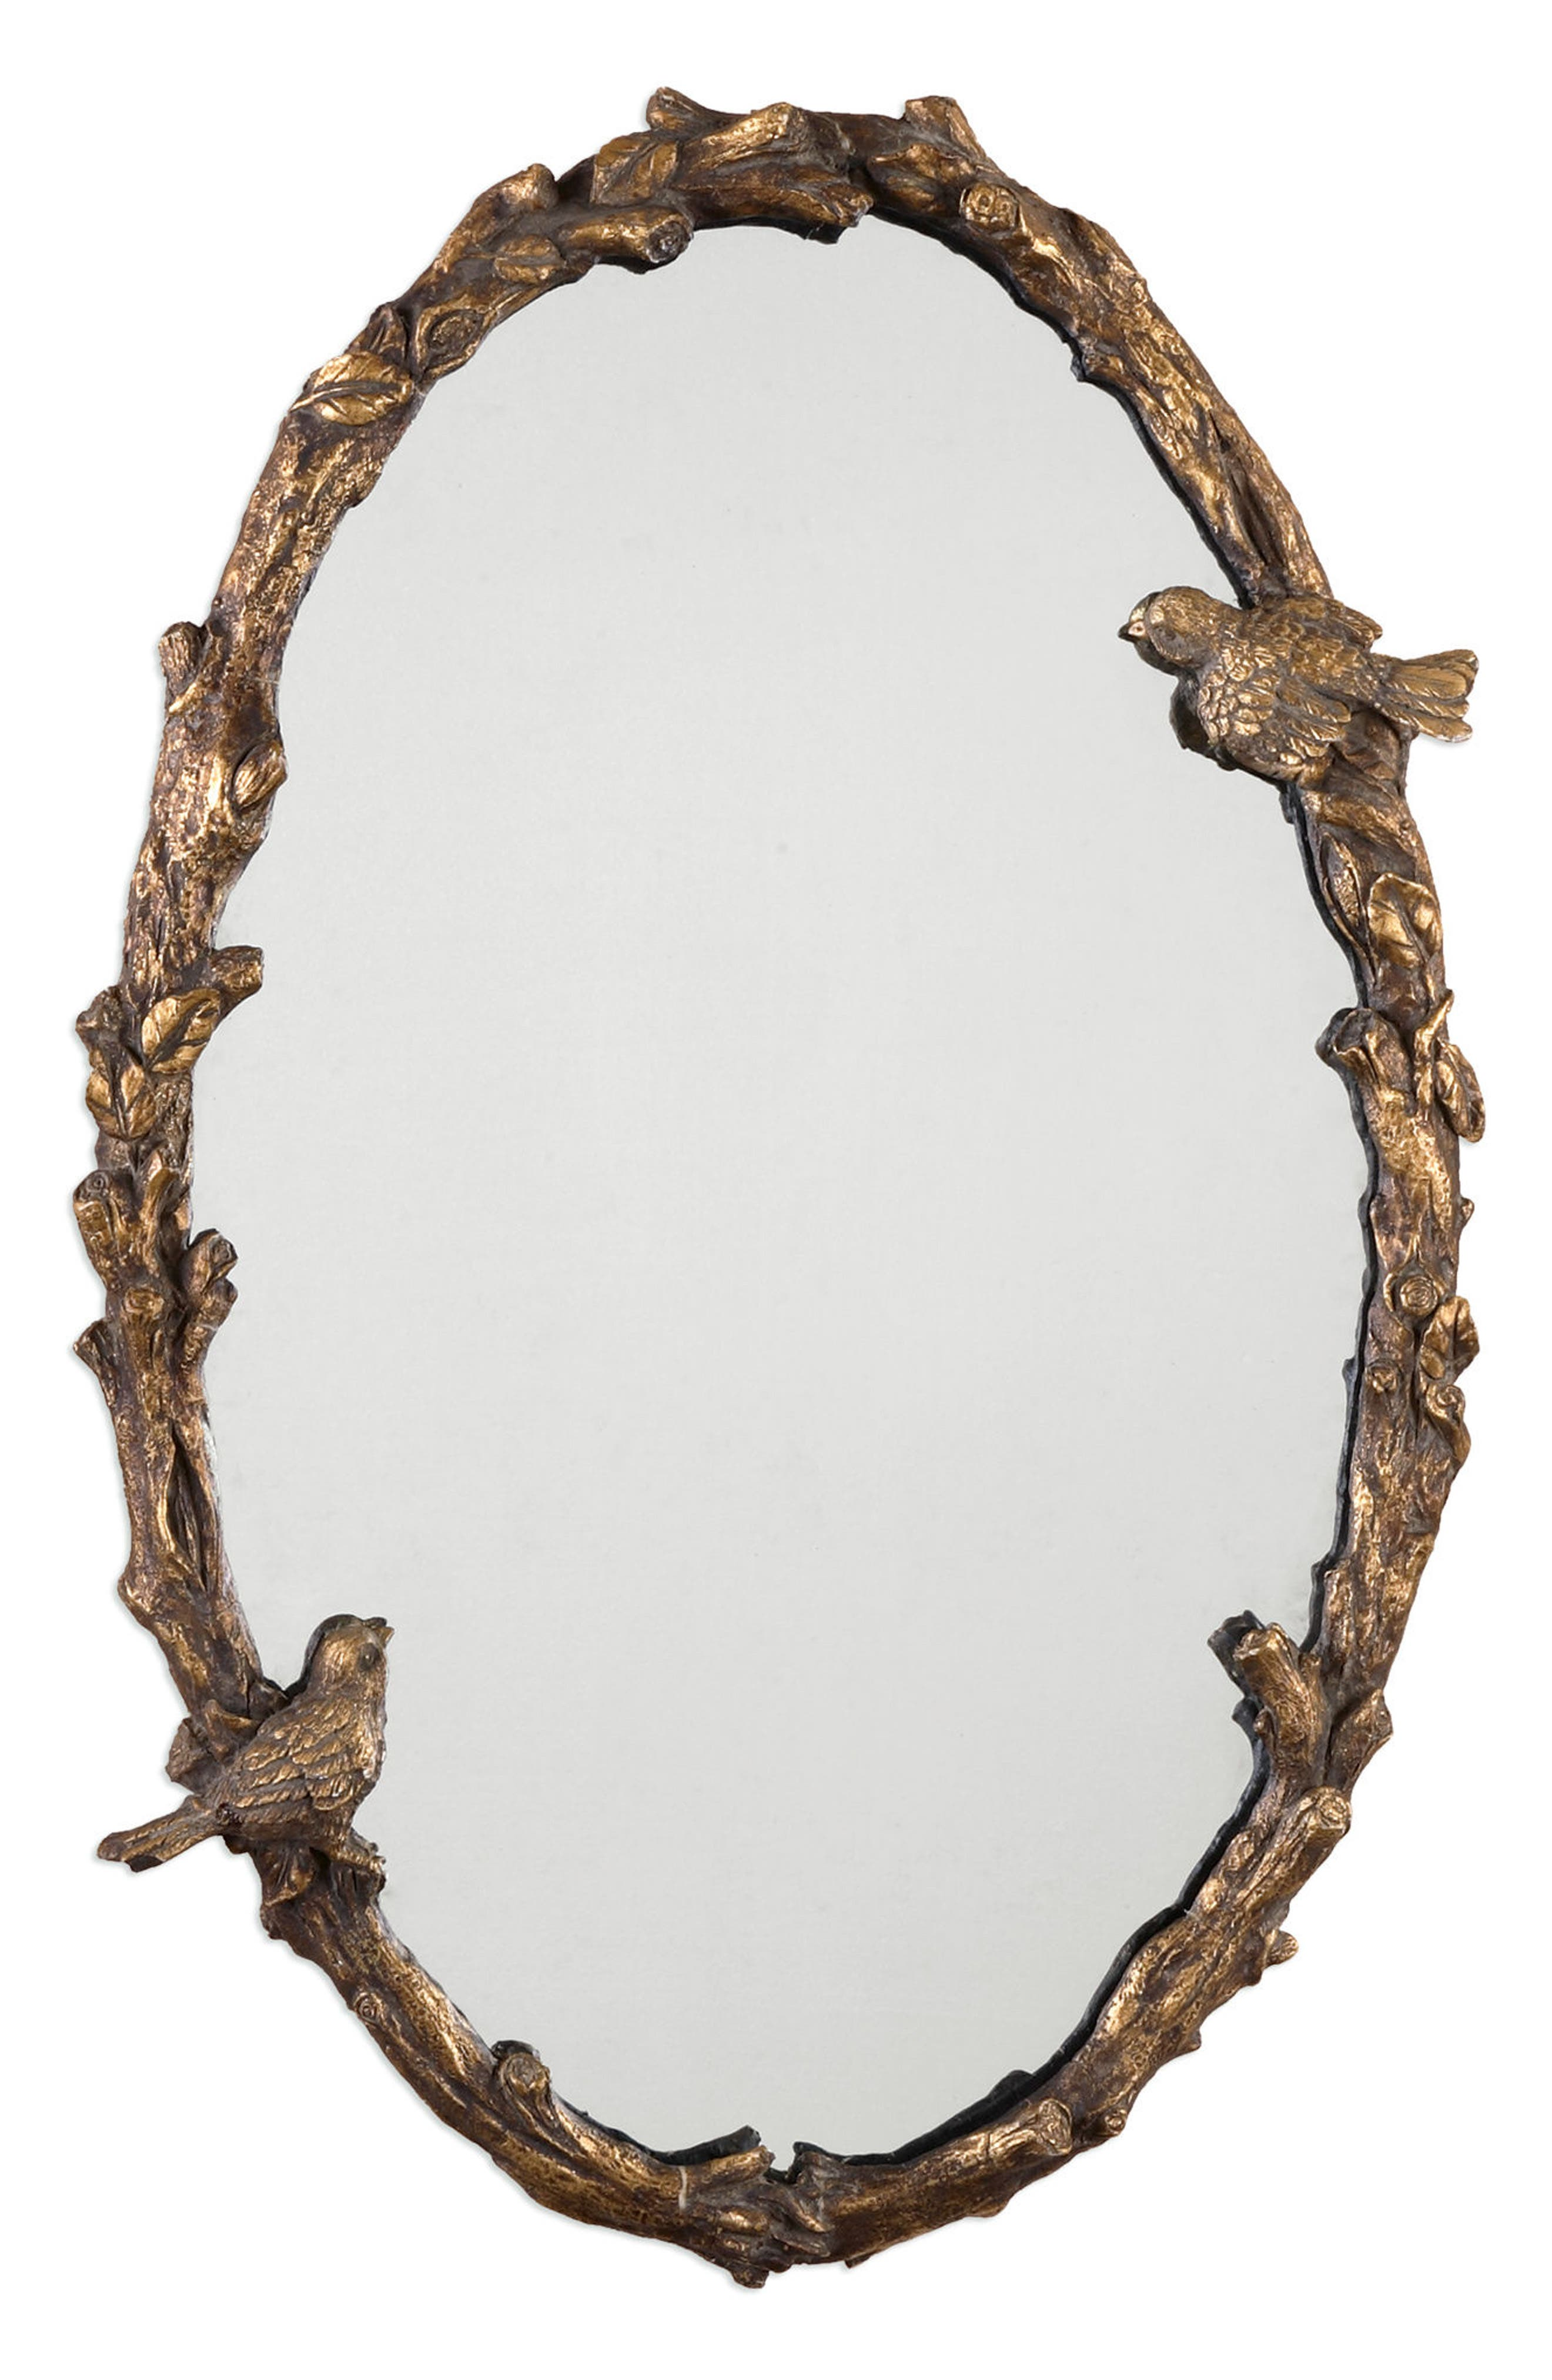 Alternate Image 1 Selected - Uttermost Paza Vine Oval Wall Mirror